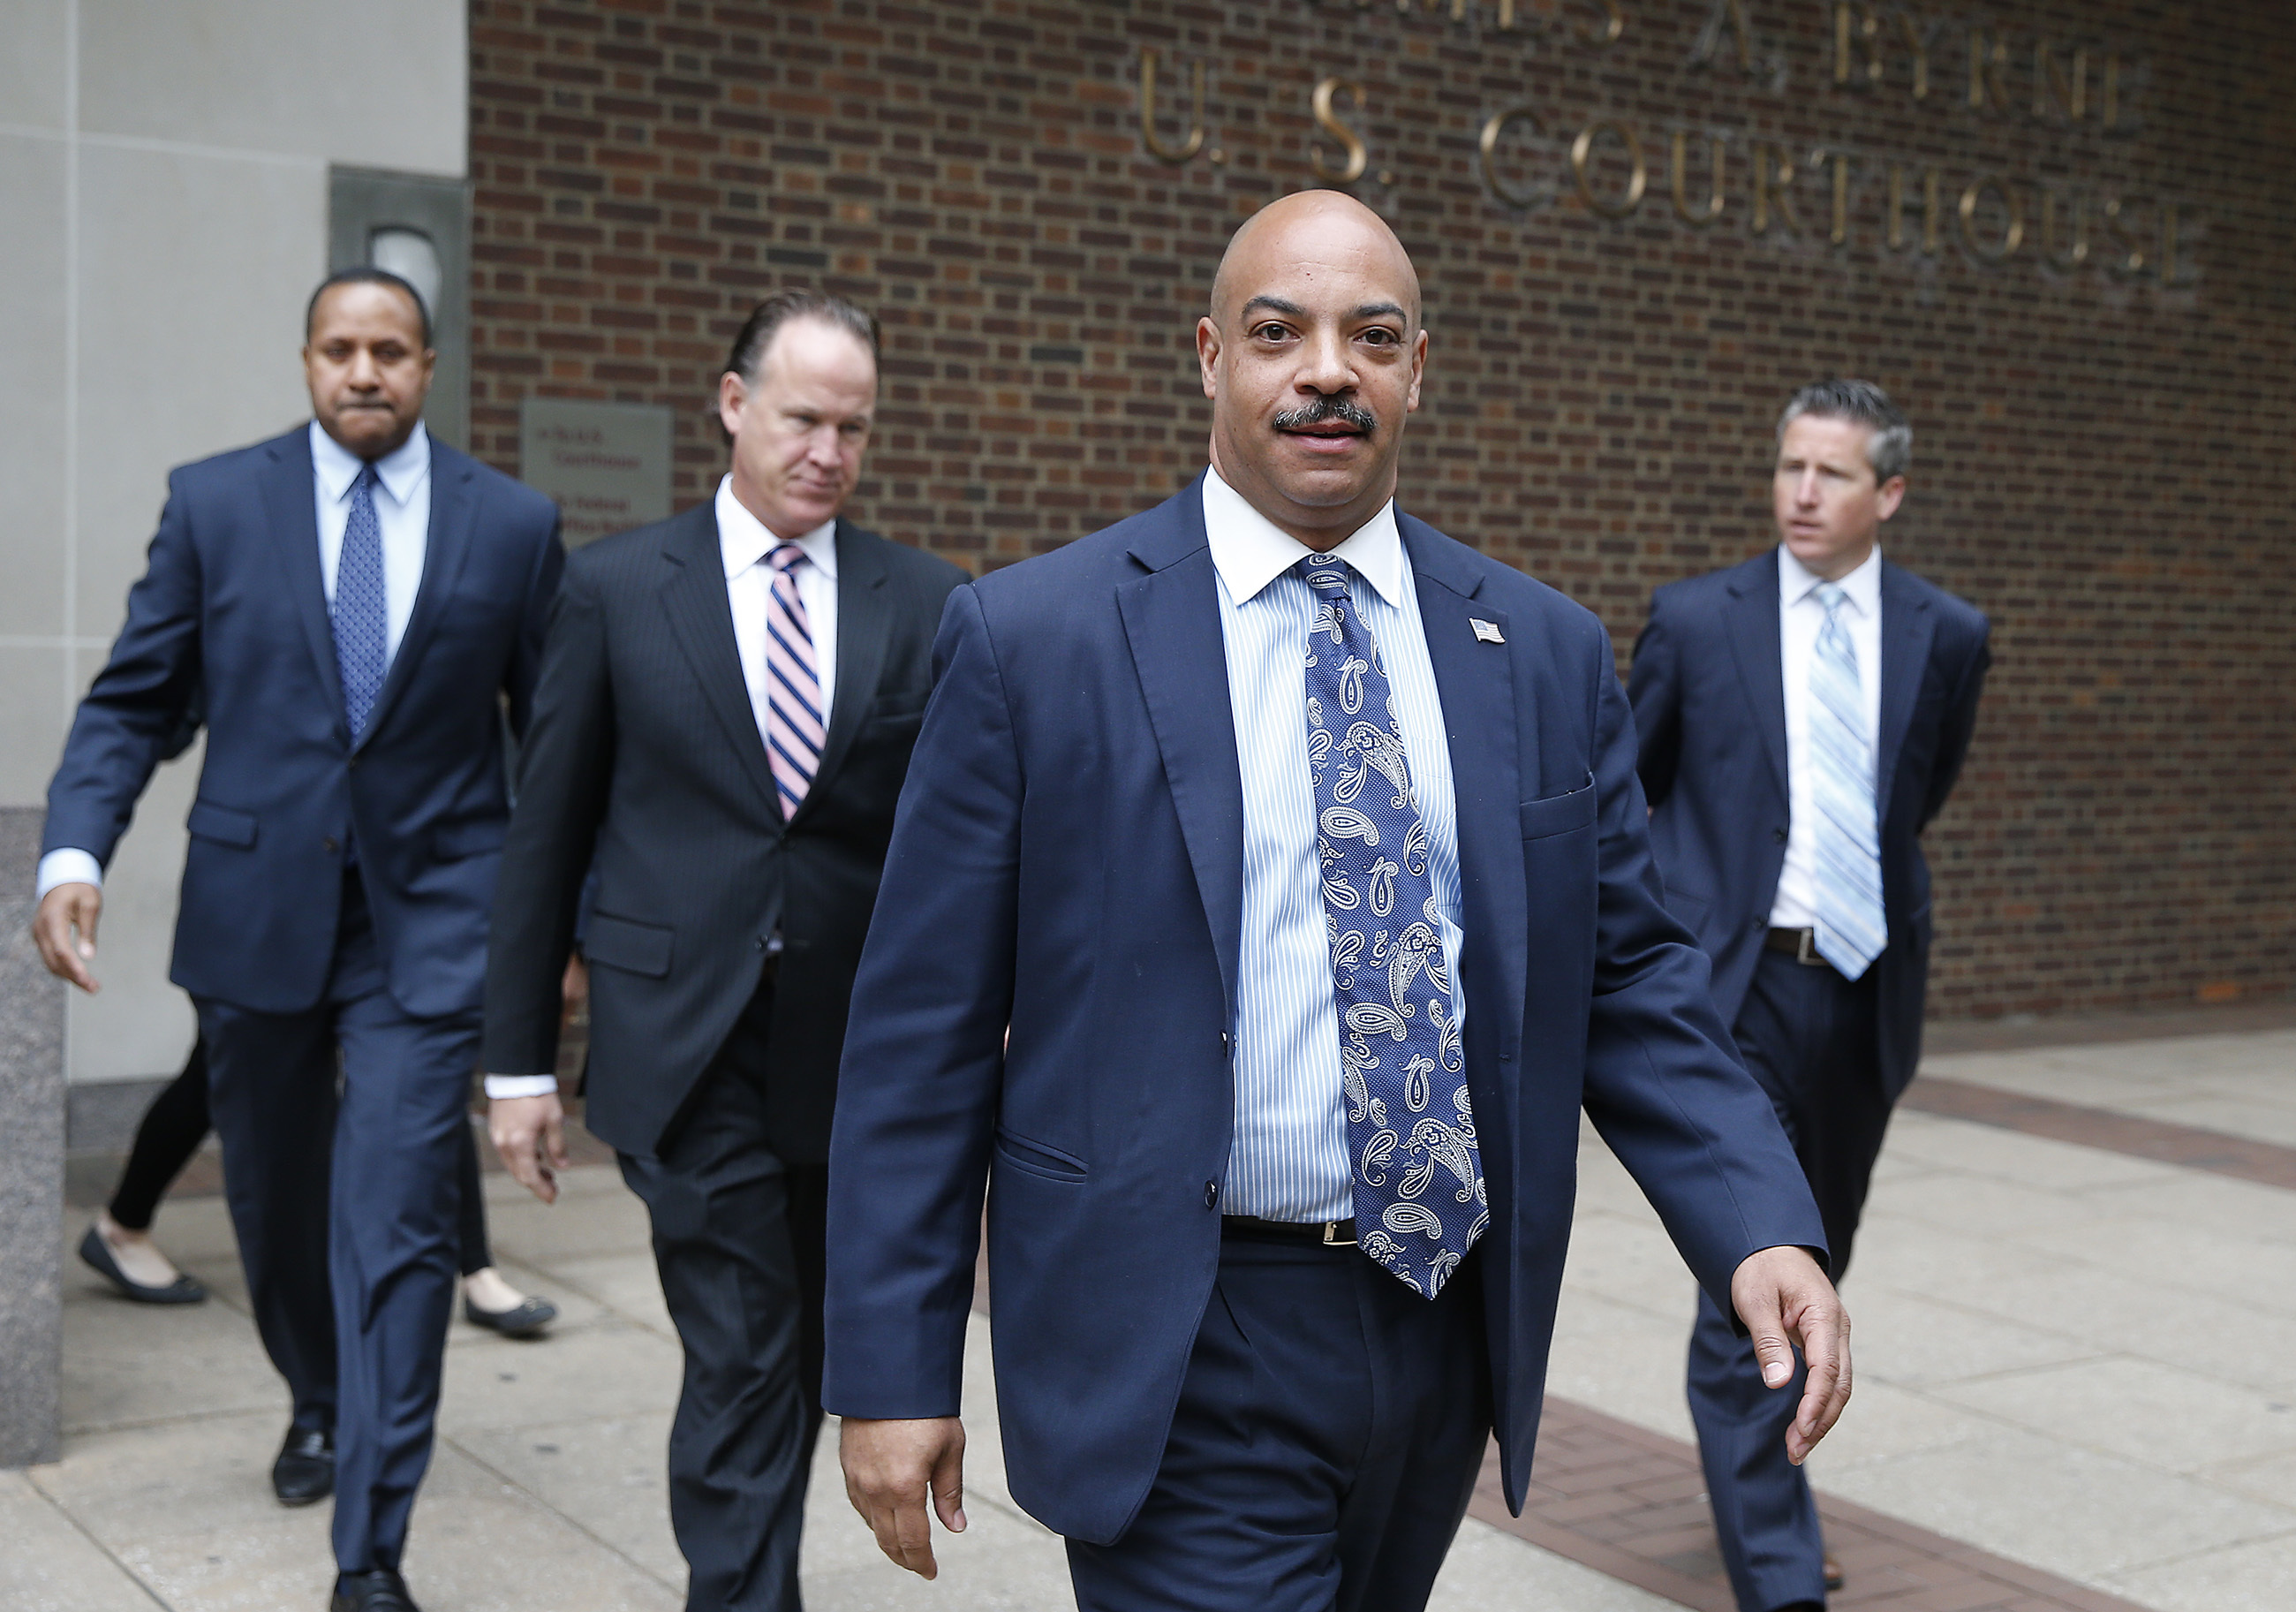 Seth Williams, center, leaves after being arraigned on additional charges at federal court in Philadelphia, PA on May 11, 2017. (DAVID MAIALETTI / Staff Photographer)